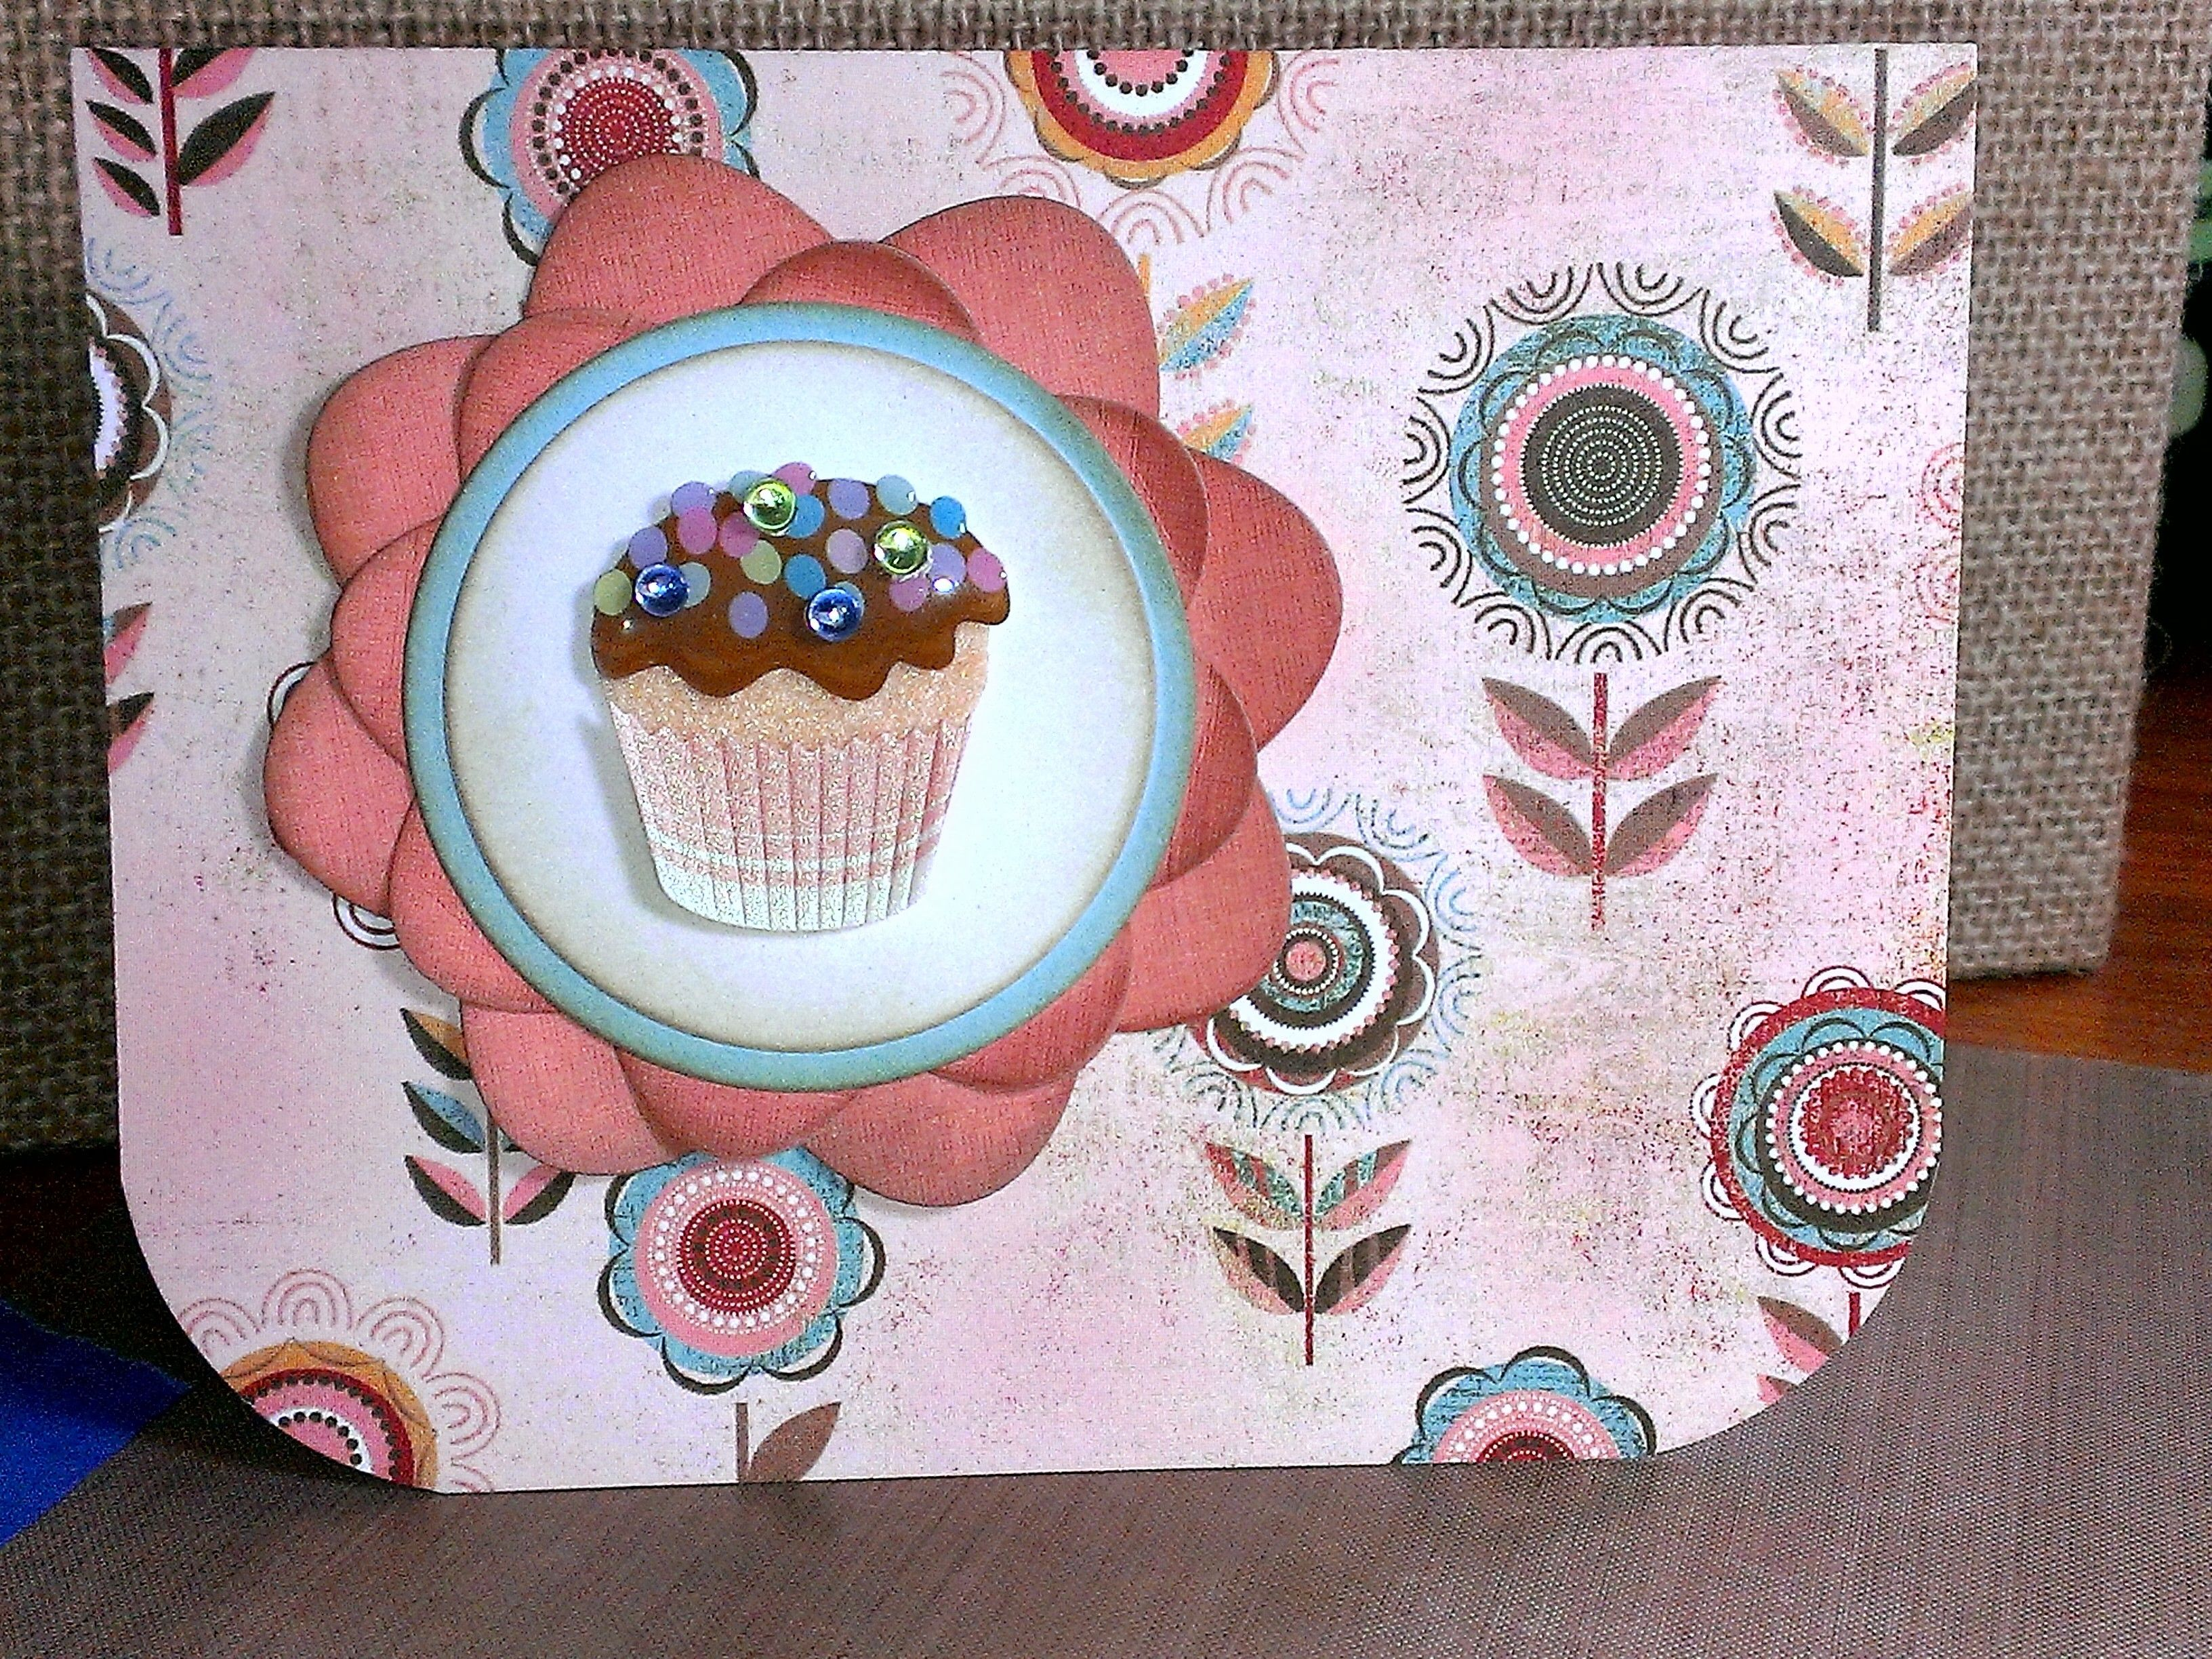 Jolee's Boutique 3D cupcake sticker, Sizzix Framelits dies, Frayed Burlap Distress Ink.  I've had this patterned paper soooo long, I can't remember where it came from.  The large rounded corners were made with Fiskars corner scissors (anyone else remember those?).